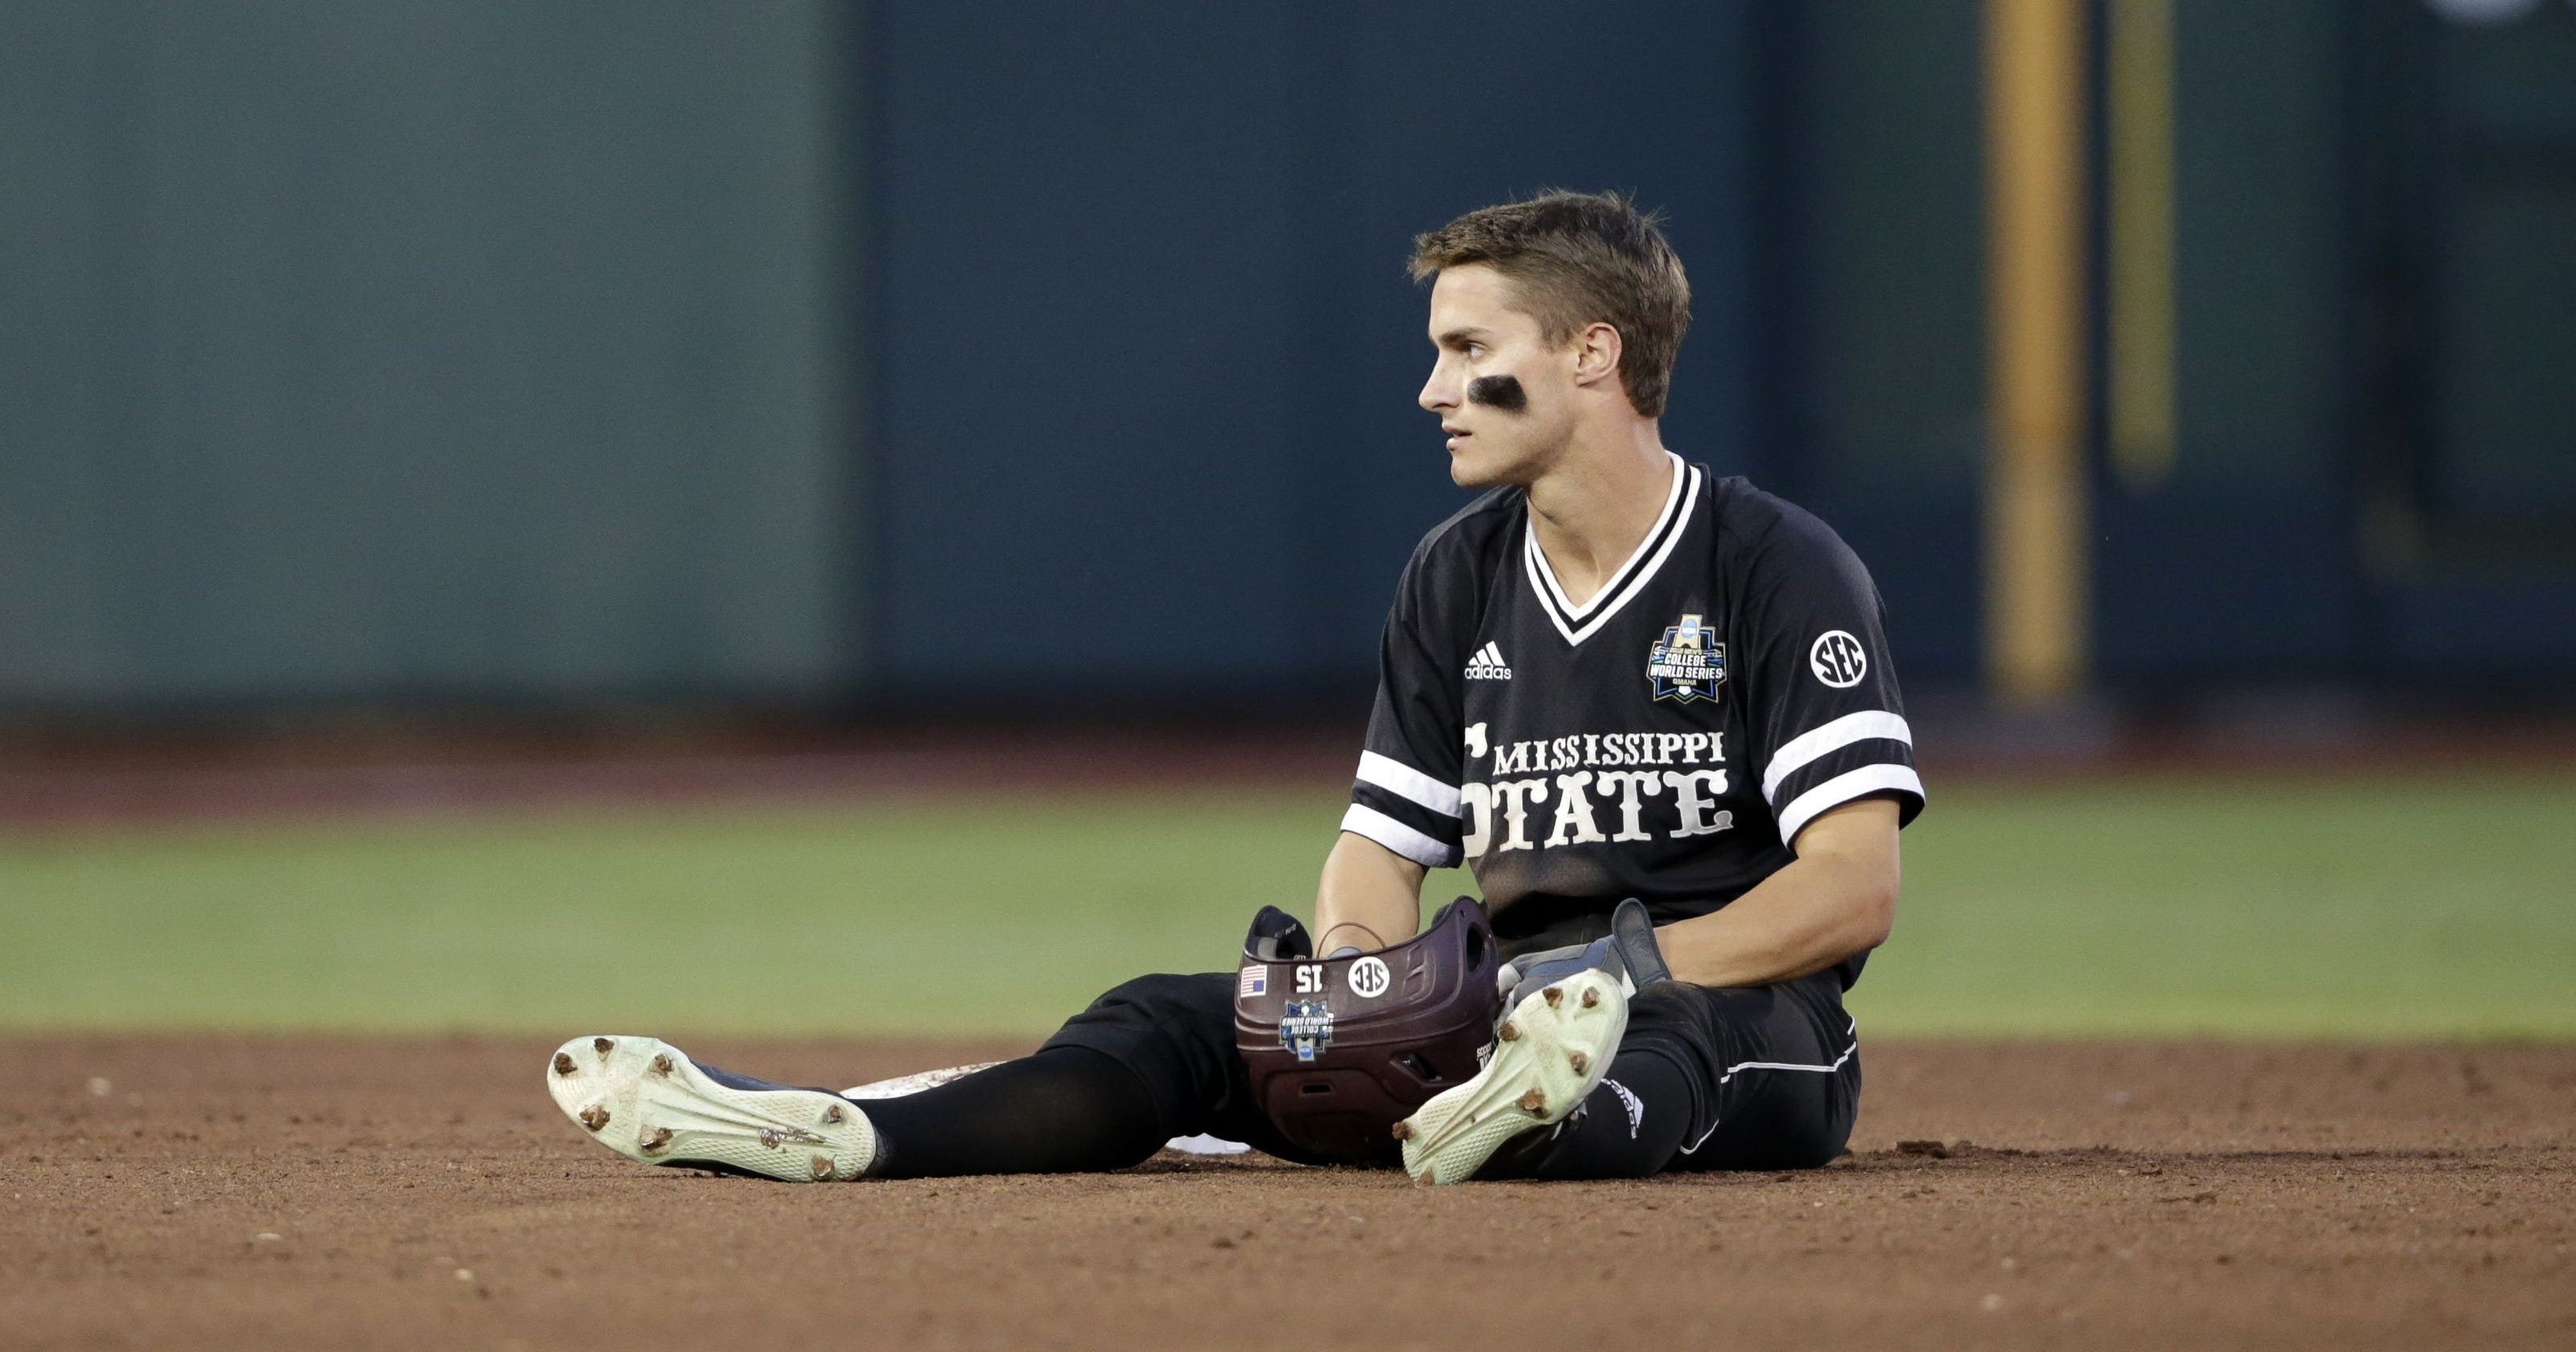 'A mutant': Why Mississippi State players, coaches aren't worried about Jake Mangum's slump